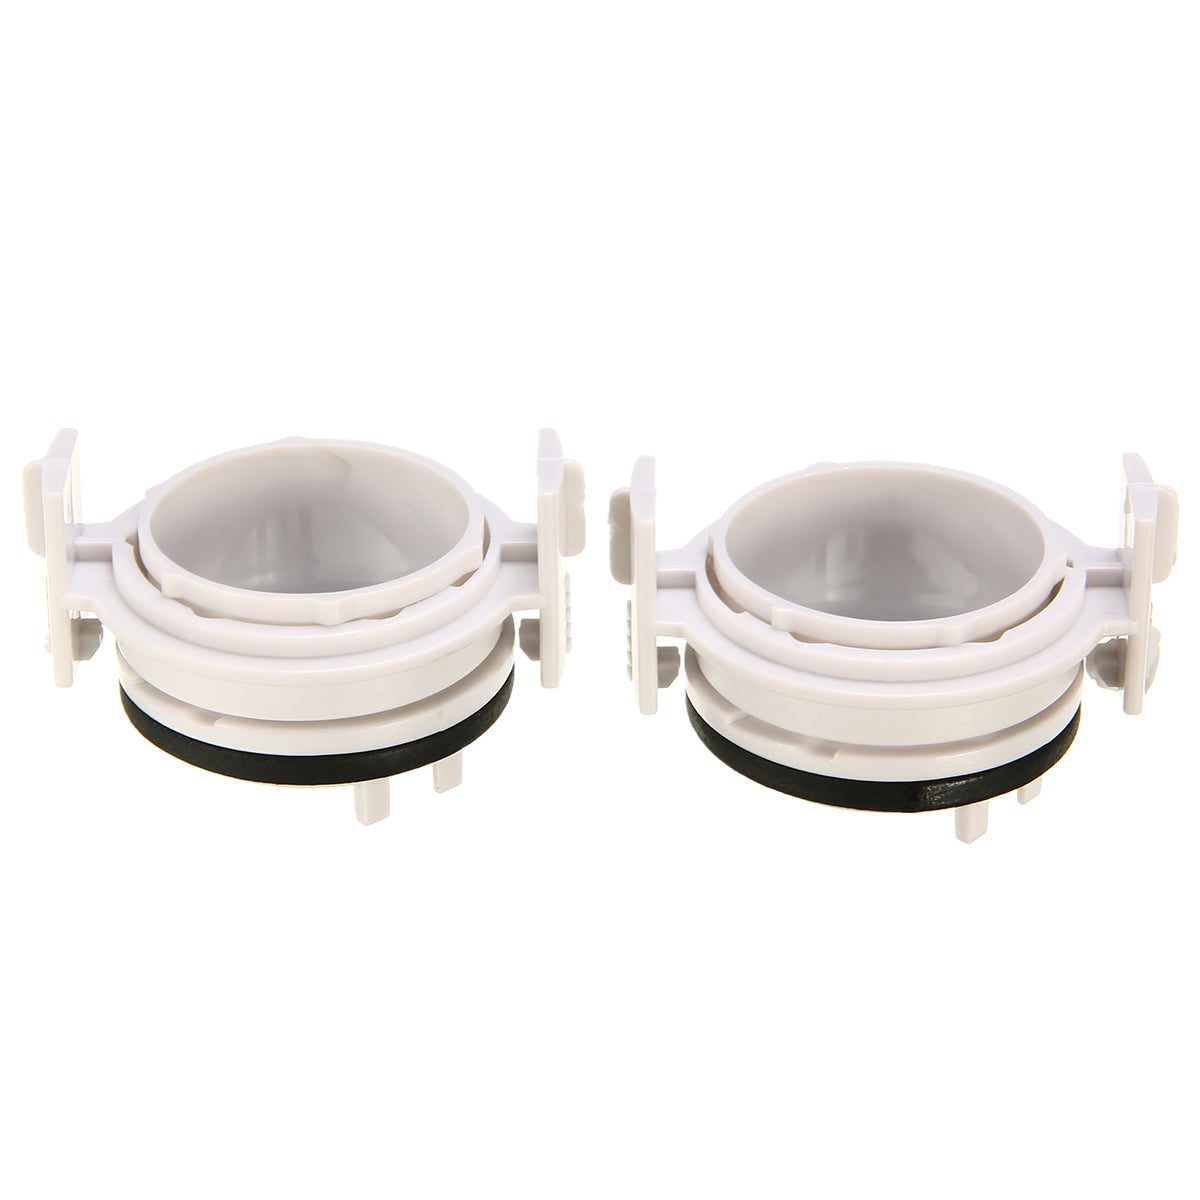 Costbuys  1 Pair High Quality H7 HID Bulb Conversion Adapter Holder for BMW E46 3 Series 1999 - 2006 White No Bulbs Car Accessor